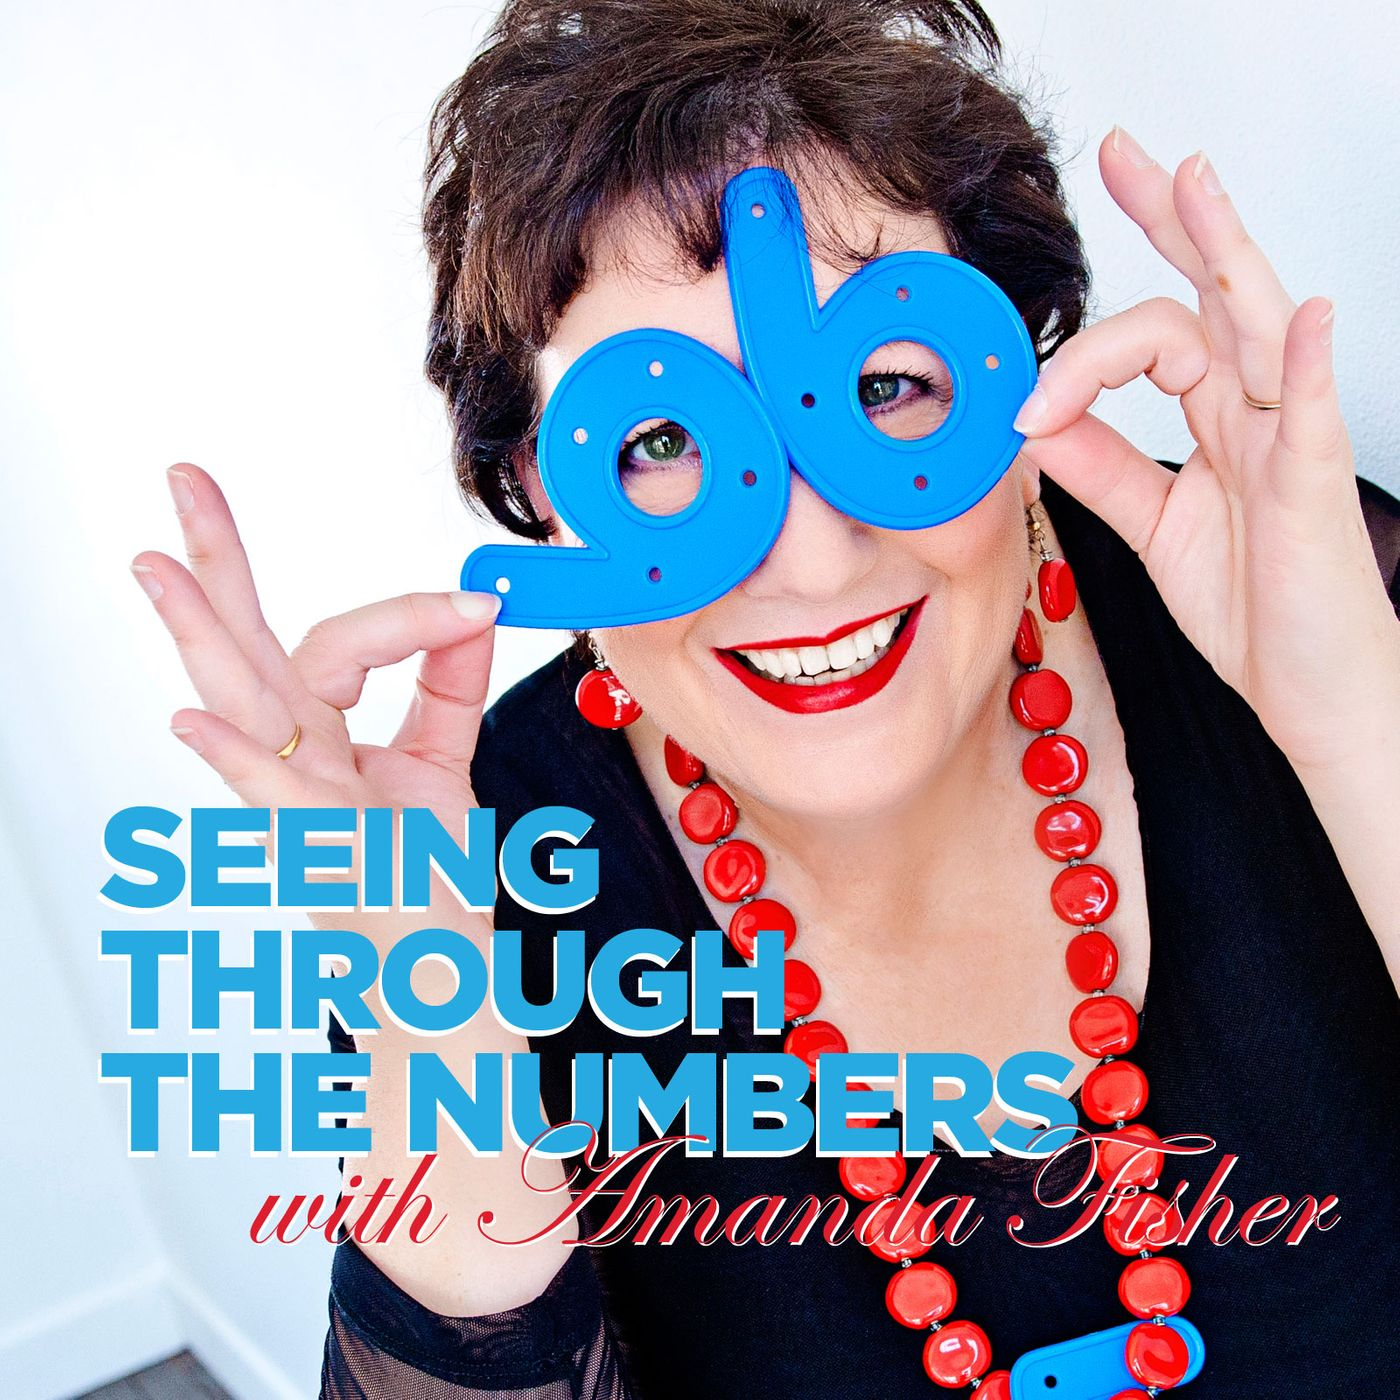 Seeing Through The Numbers podcast show image